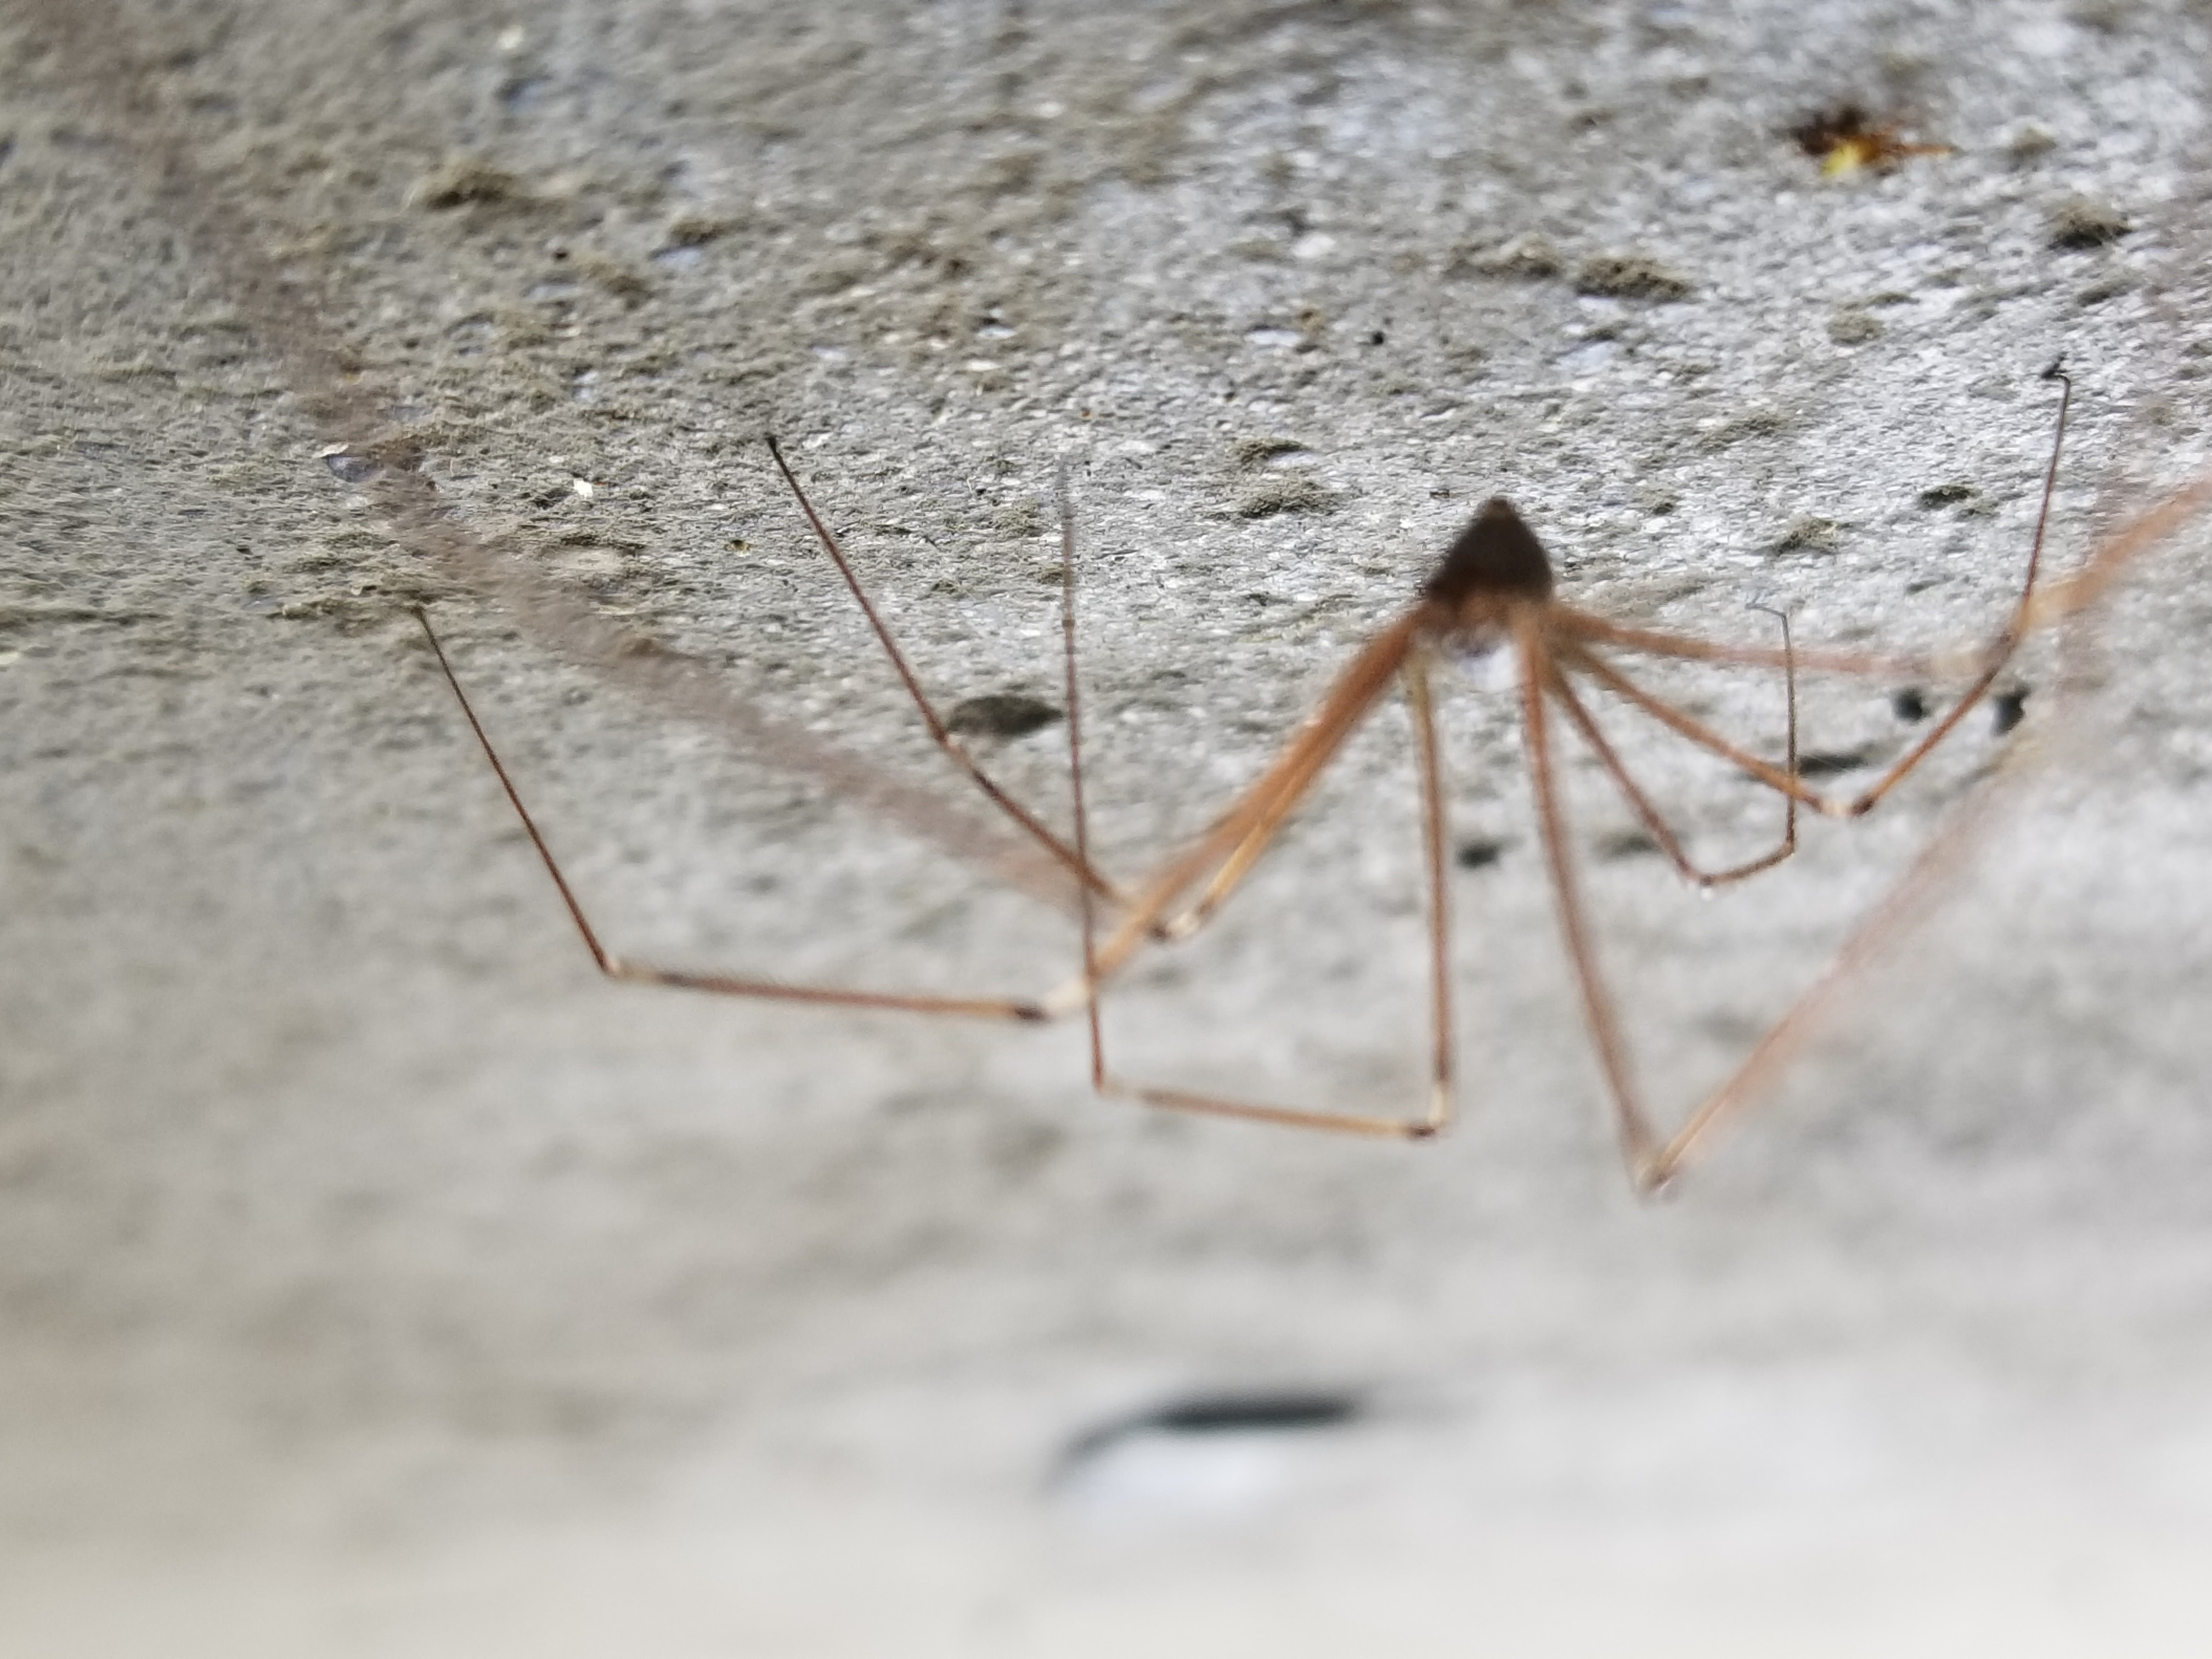 Picture of Pholcus phalangioides (Long-bodied Cellar Spider)